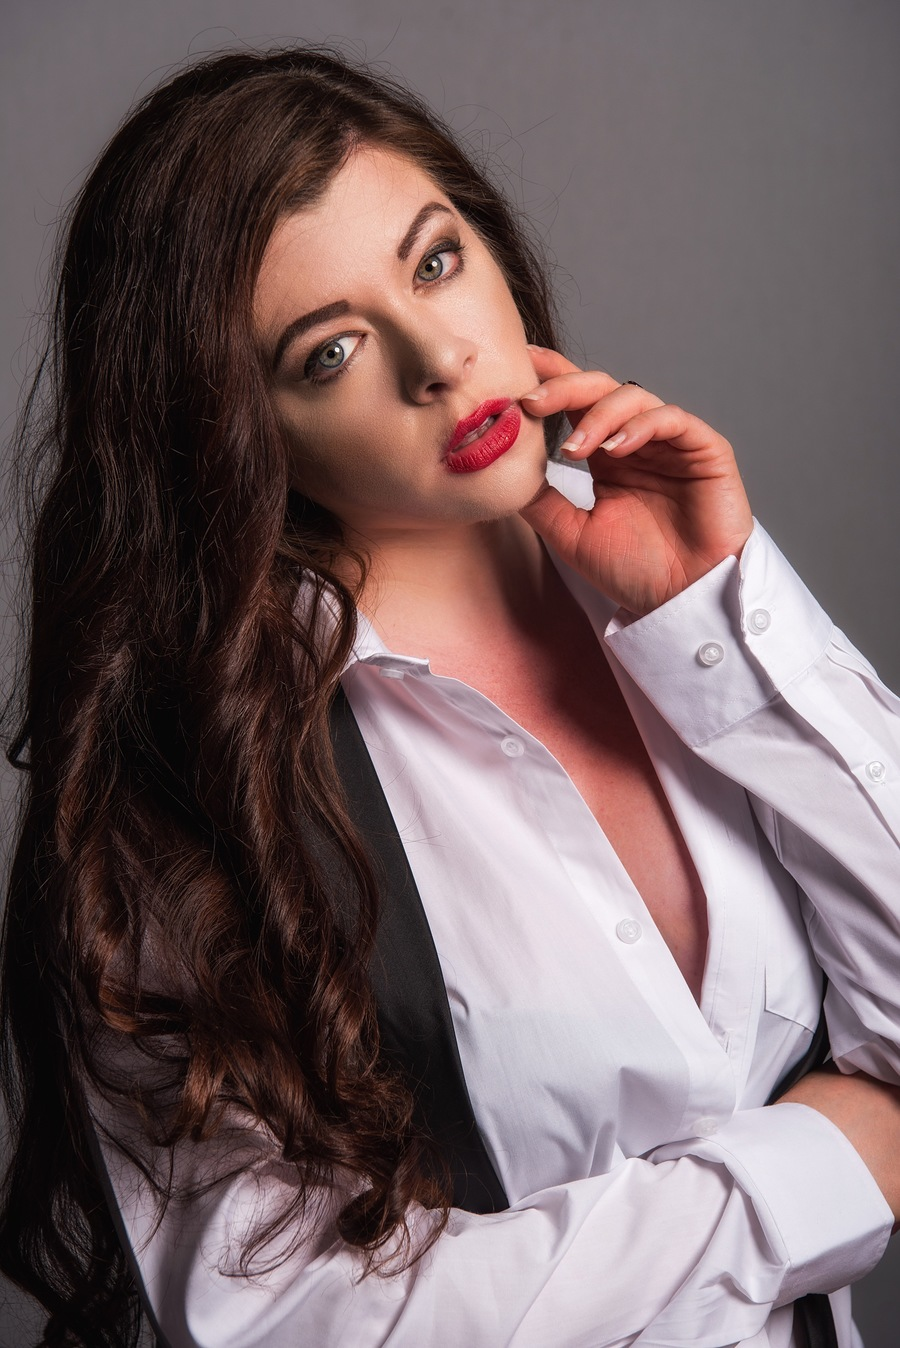 Your shirt / Photography by Roger M, Model Rhianna Grey / Uploaded 27th July 2019 @ 10:09 AM